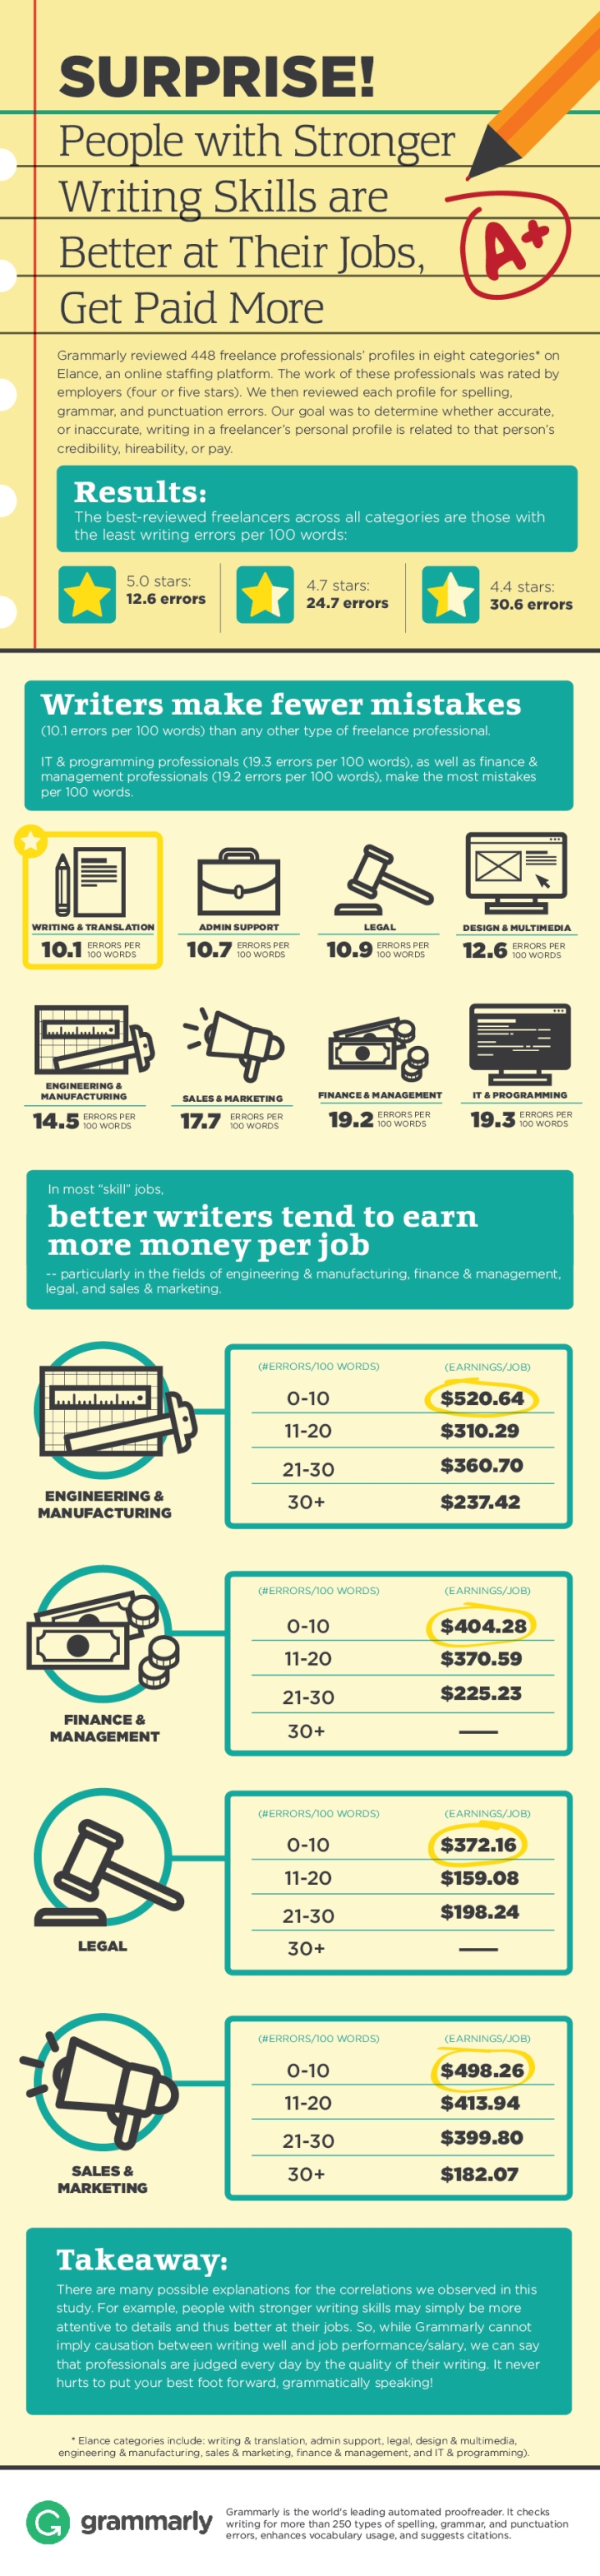 writing_skills_matter infographic